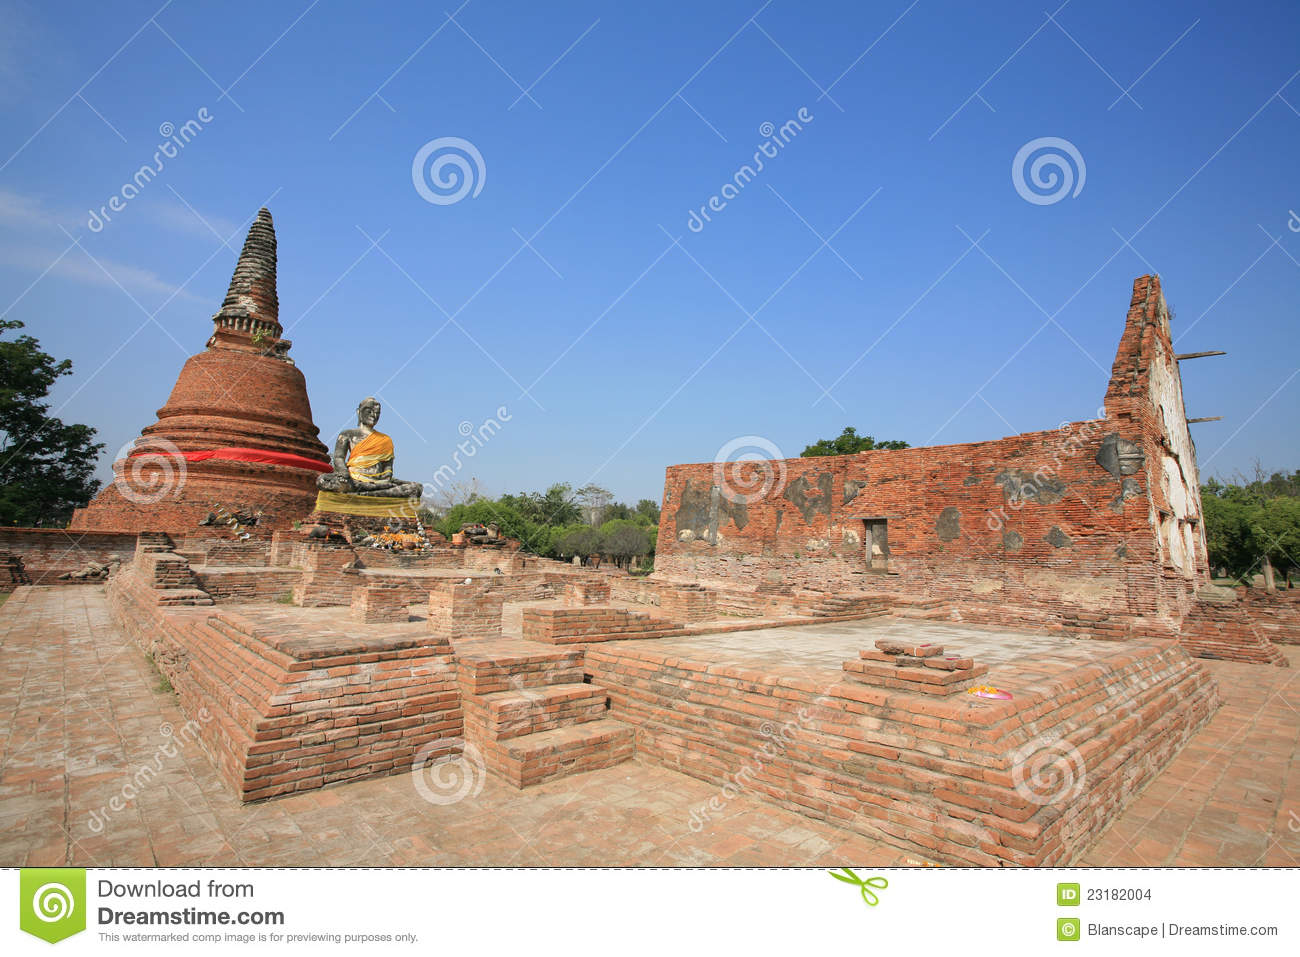 Ruin architecture landscape at wat worachet tharam stock for Wat architecture